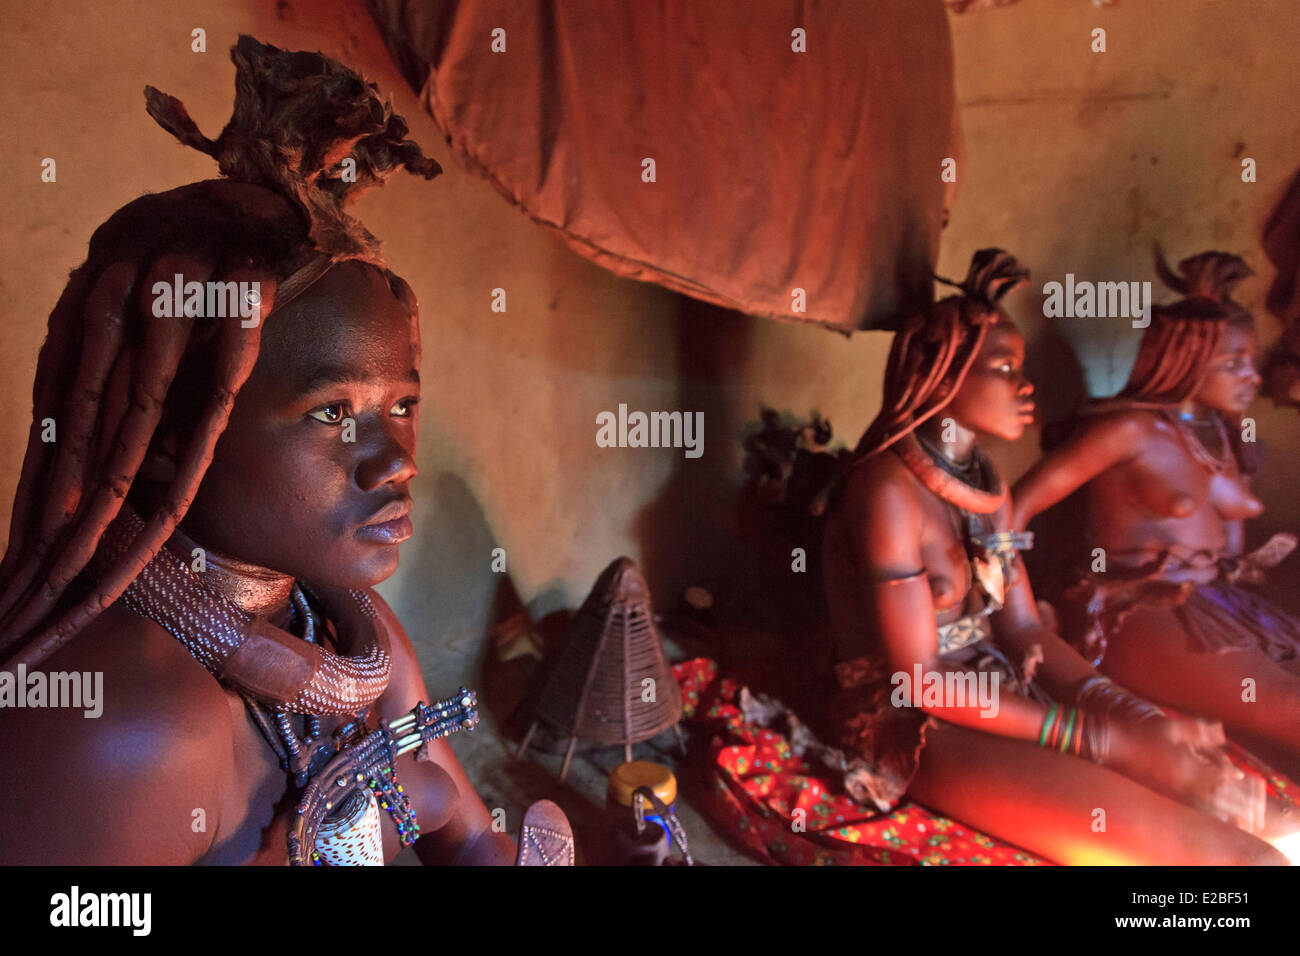 Namibia, Kunene Region, Kaokoland or Kaokoveld, Himba women in a village, Bantu ethnic group, body covered with - Stock Image